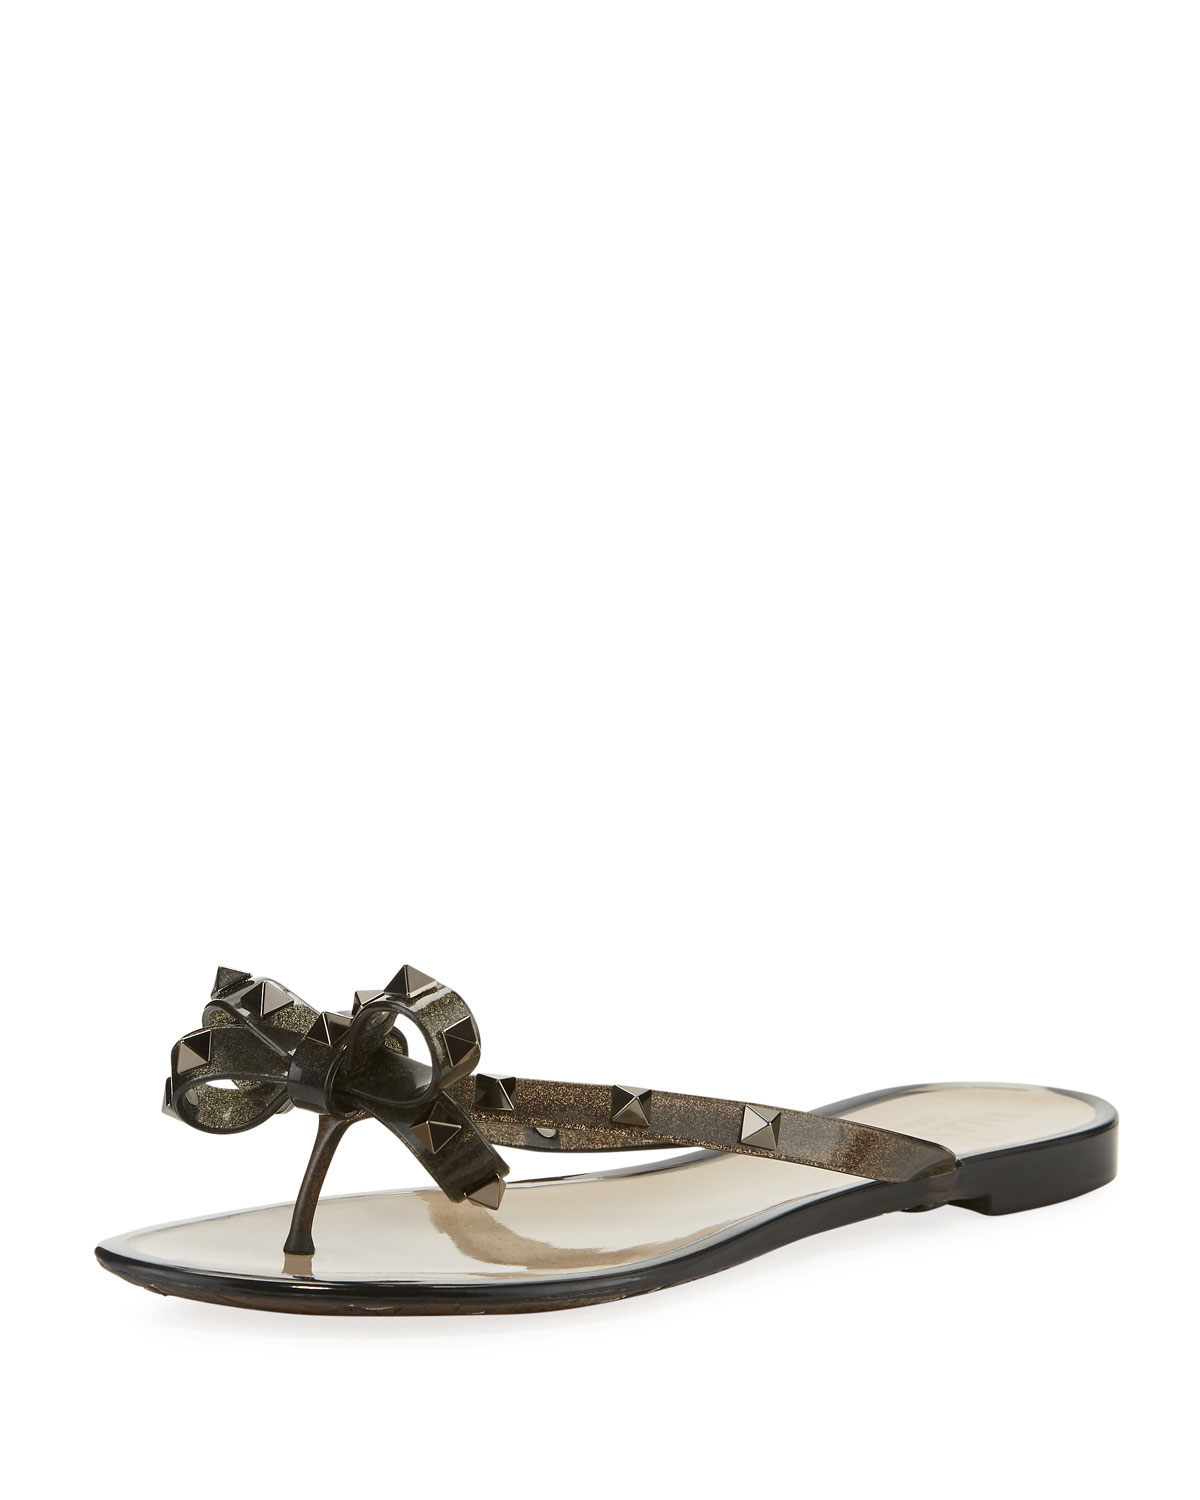 43a7a9ef7 Valentino Rockstud Flat Jelly Thong Sandals In Black